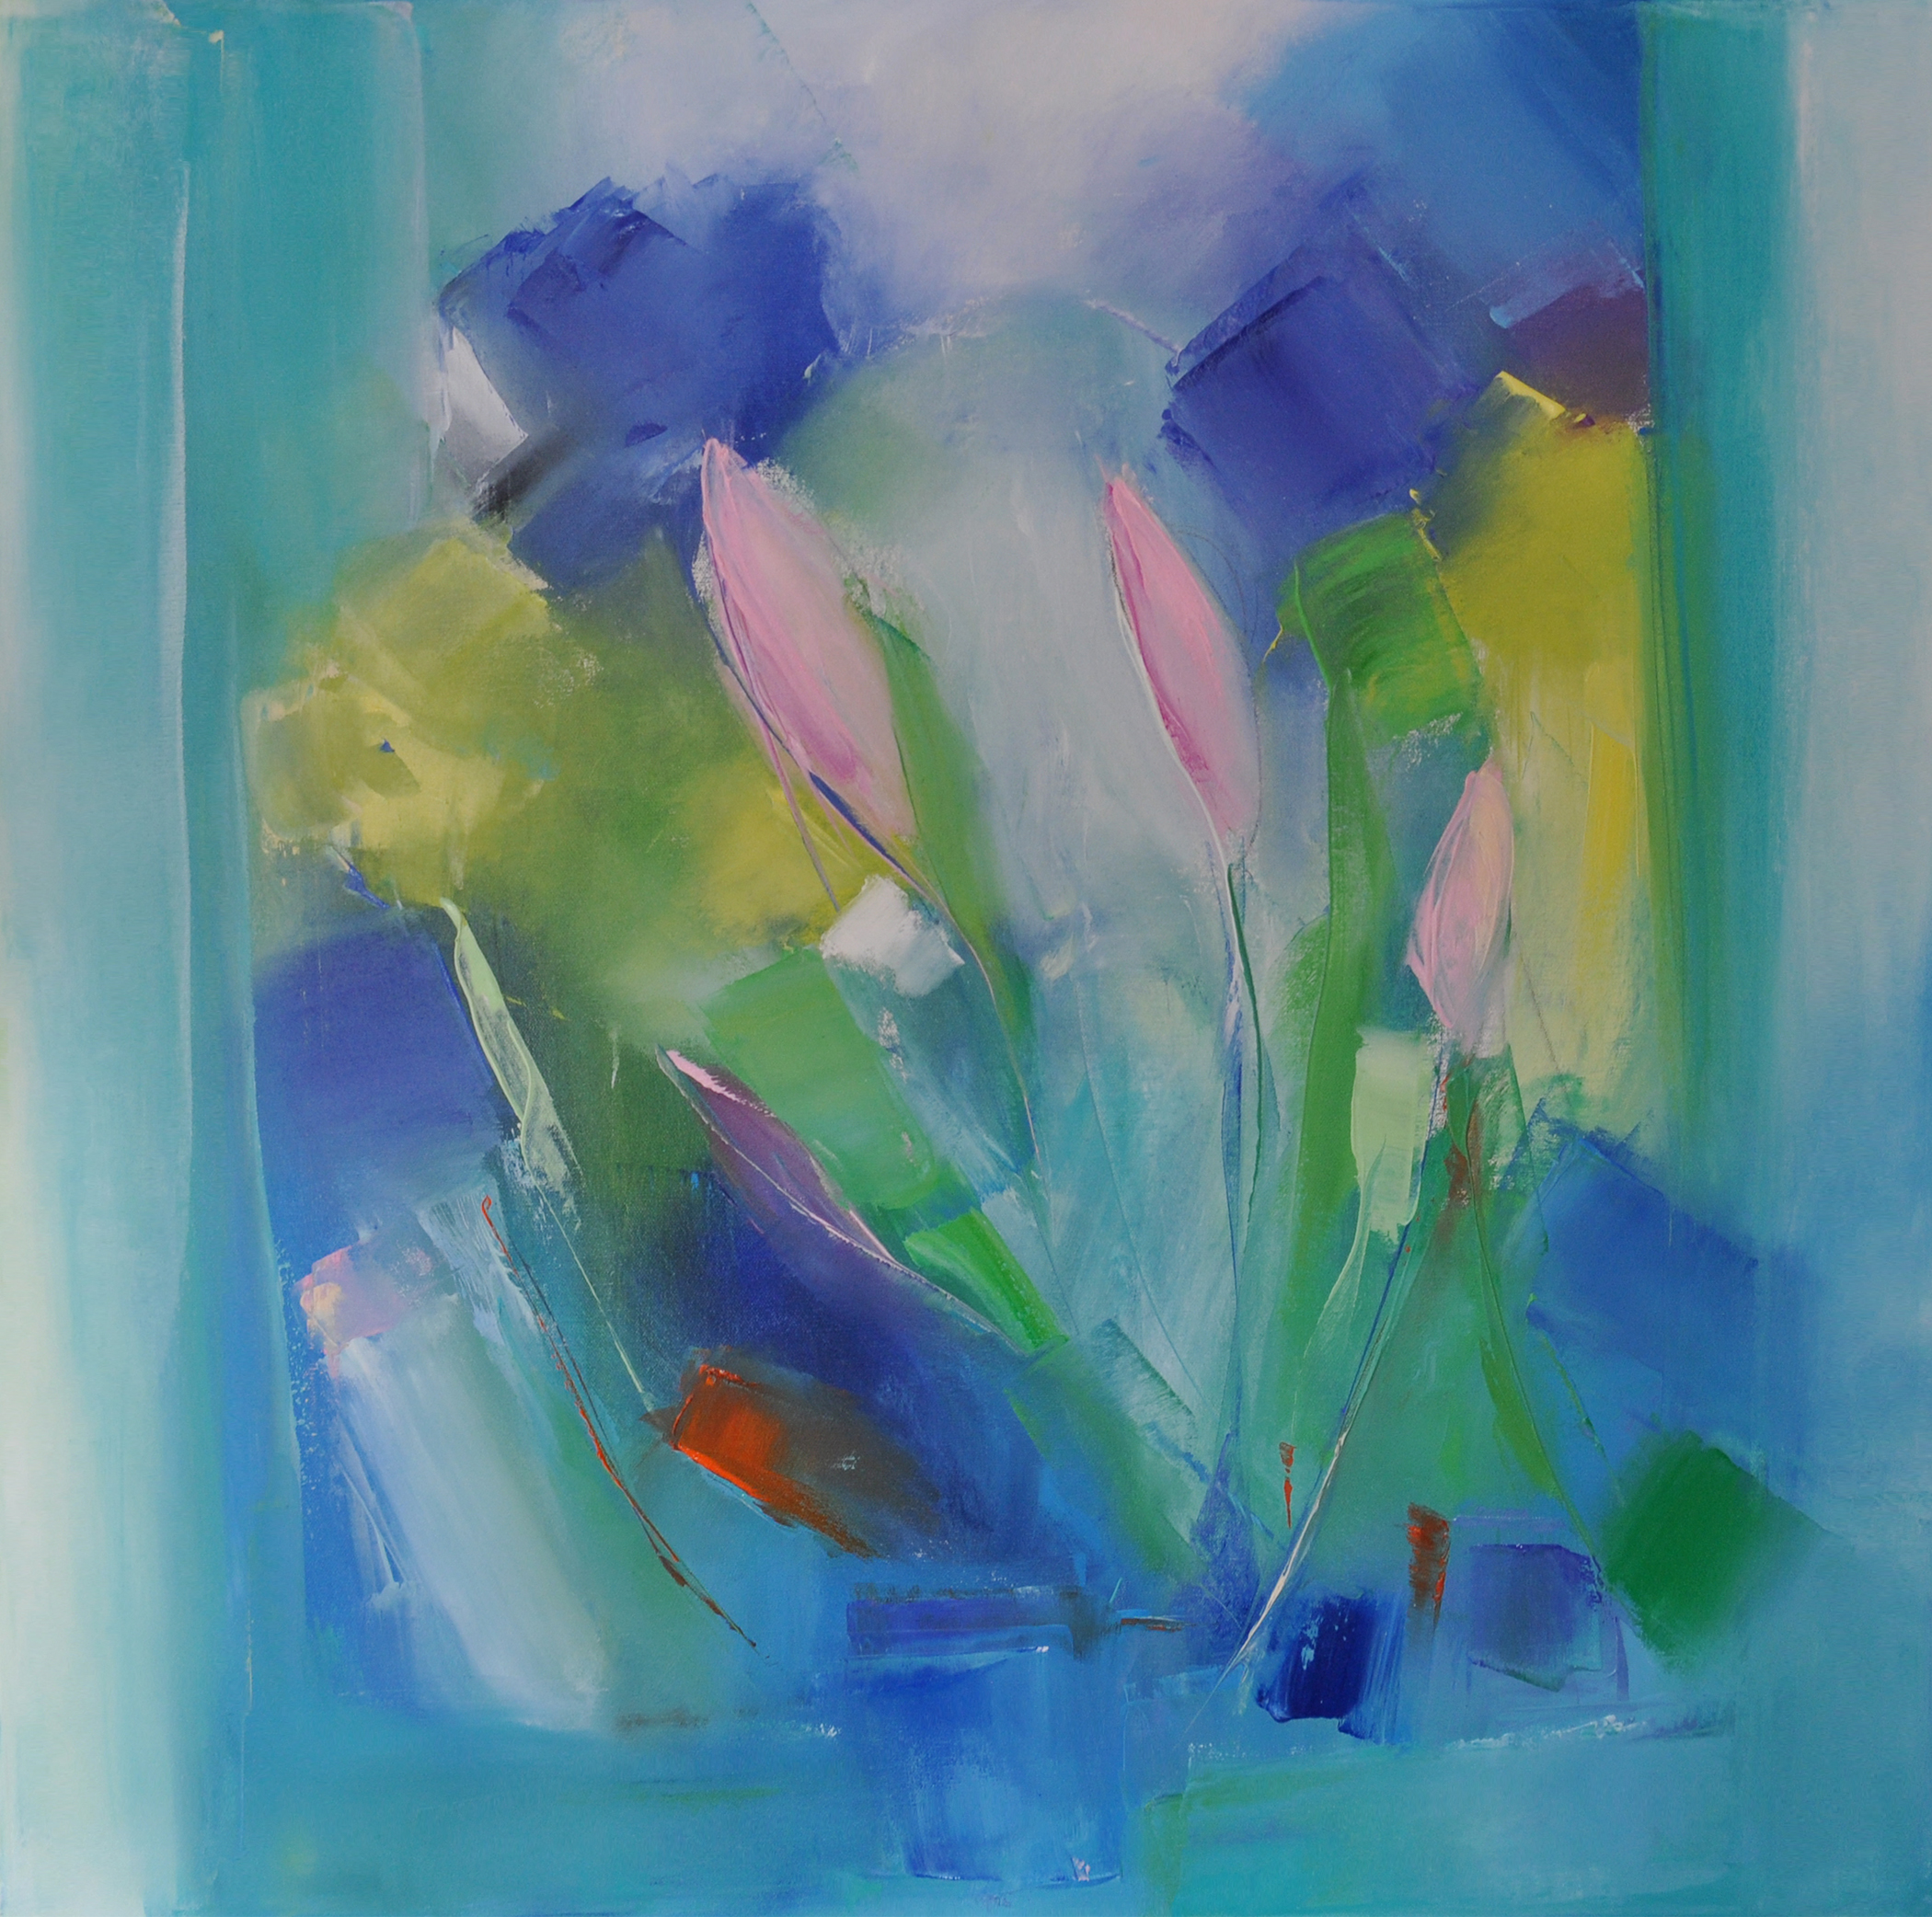 FIRST TULIPS, 30x30 inches oil on canvas 2015 DONATION at Dana Faber Hospital in BOSTON,MA